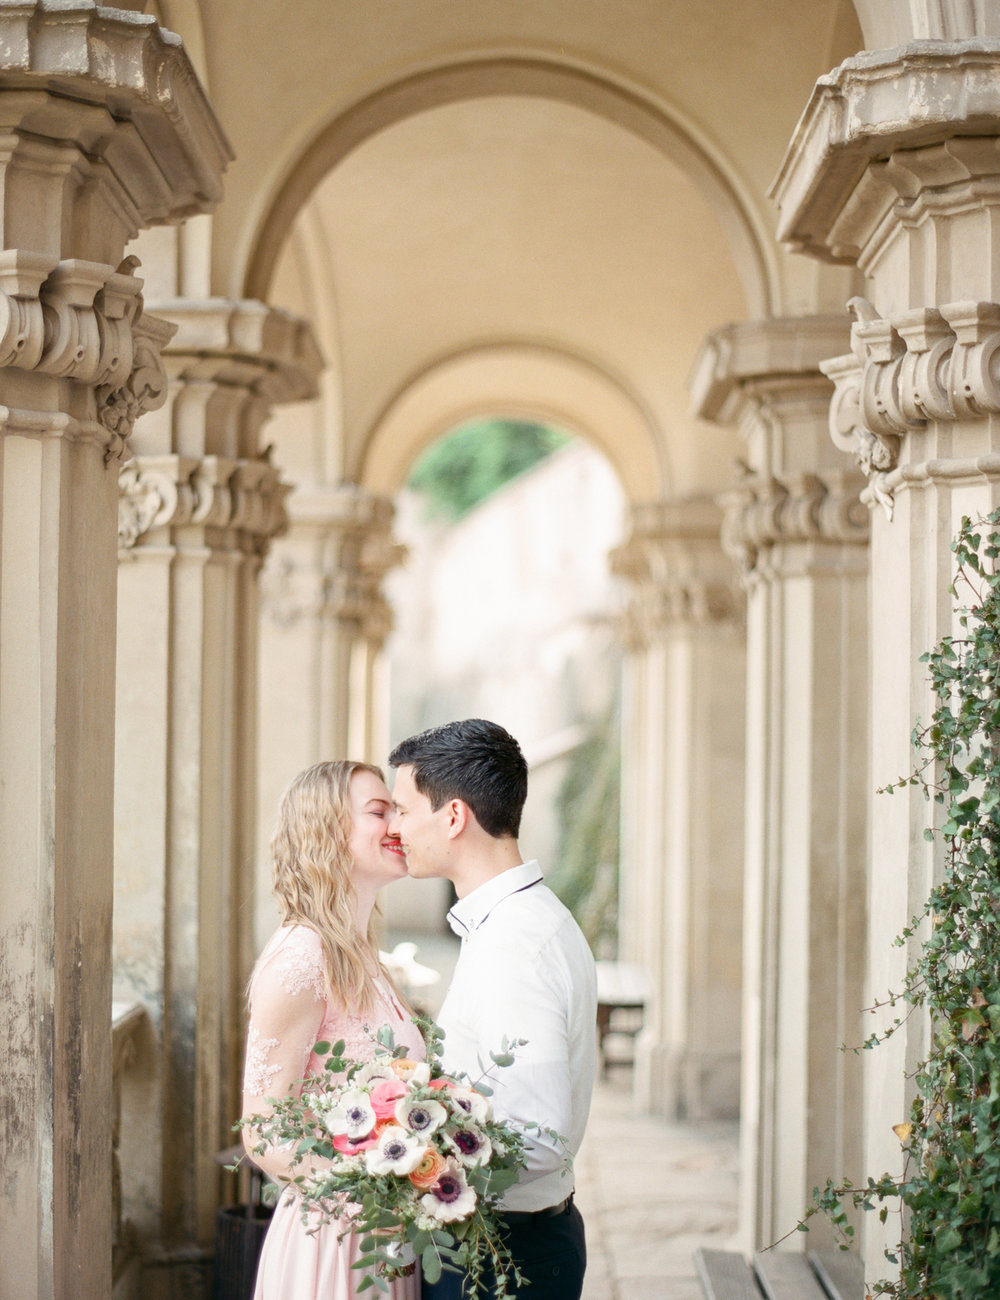 Tuscany film wedding photographer Italy Nikol Bodnarova Photography